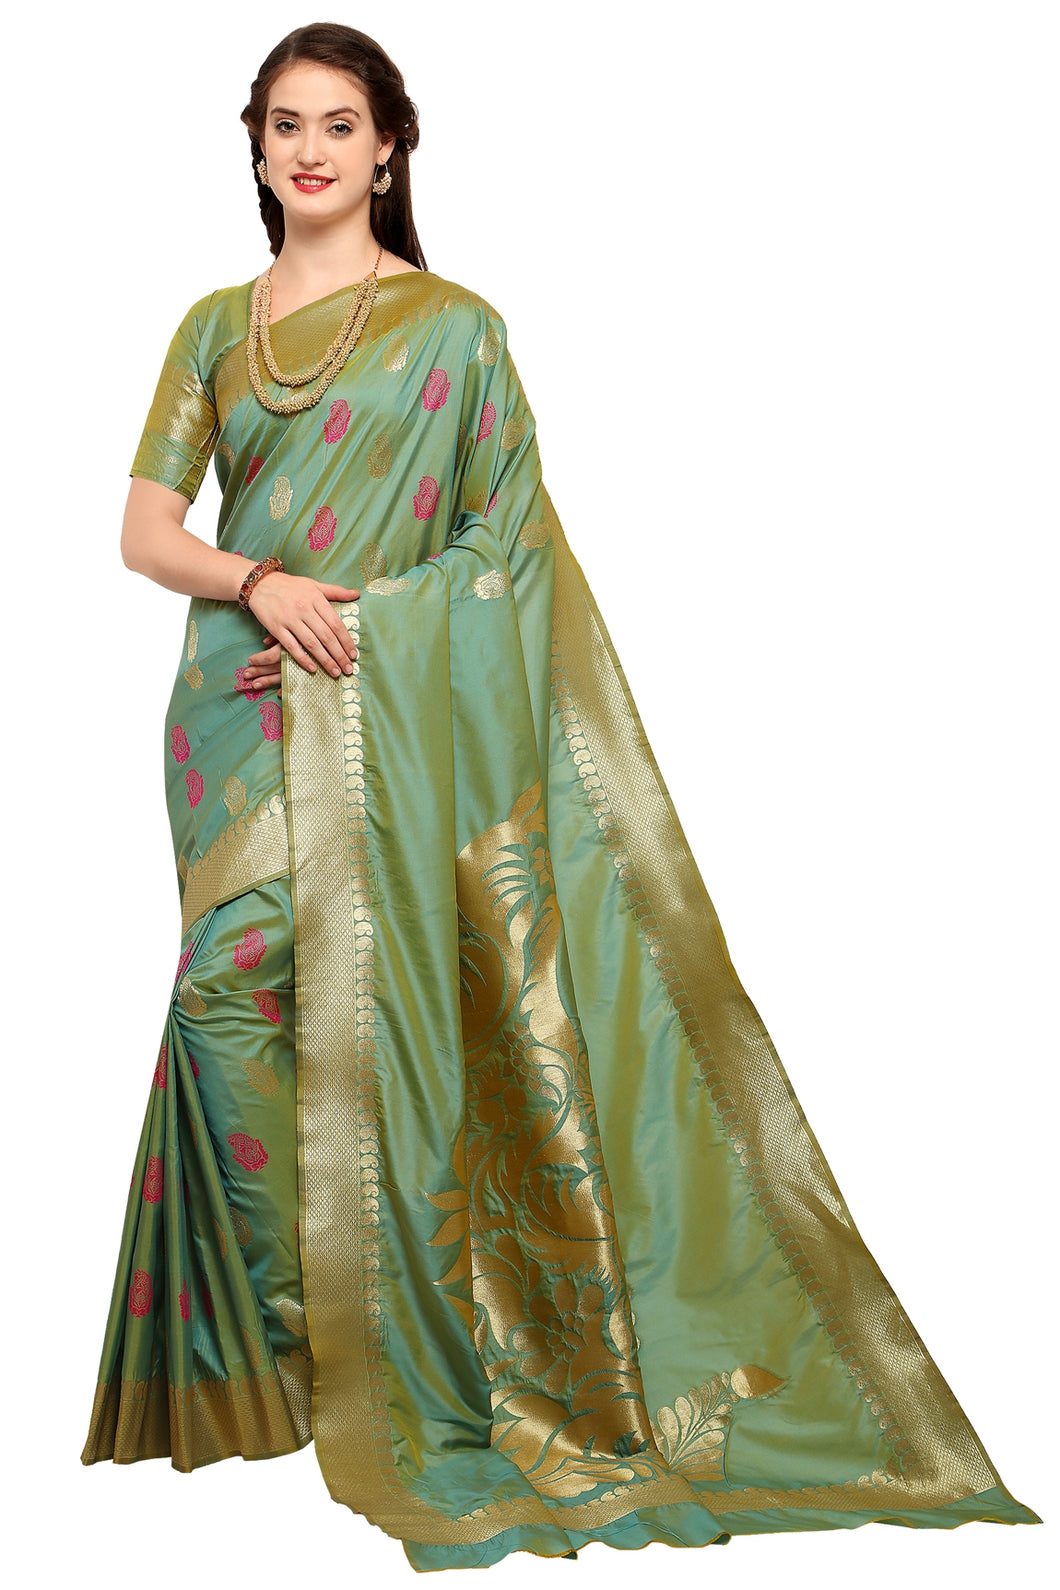 Bhelpuri Olive Green Raw Silk Woven Dhoop Chhaon Saree with Blouse Piece